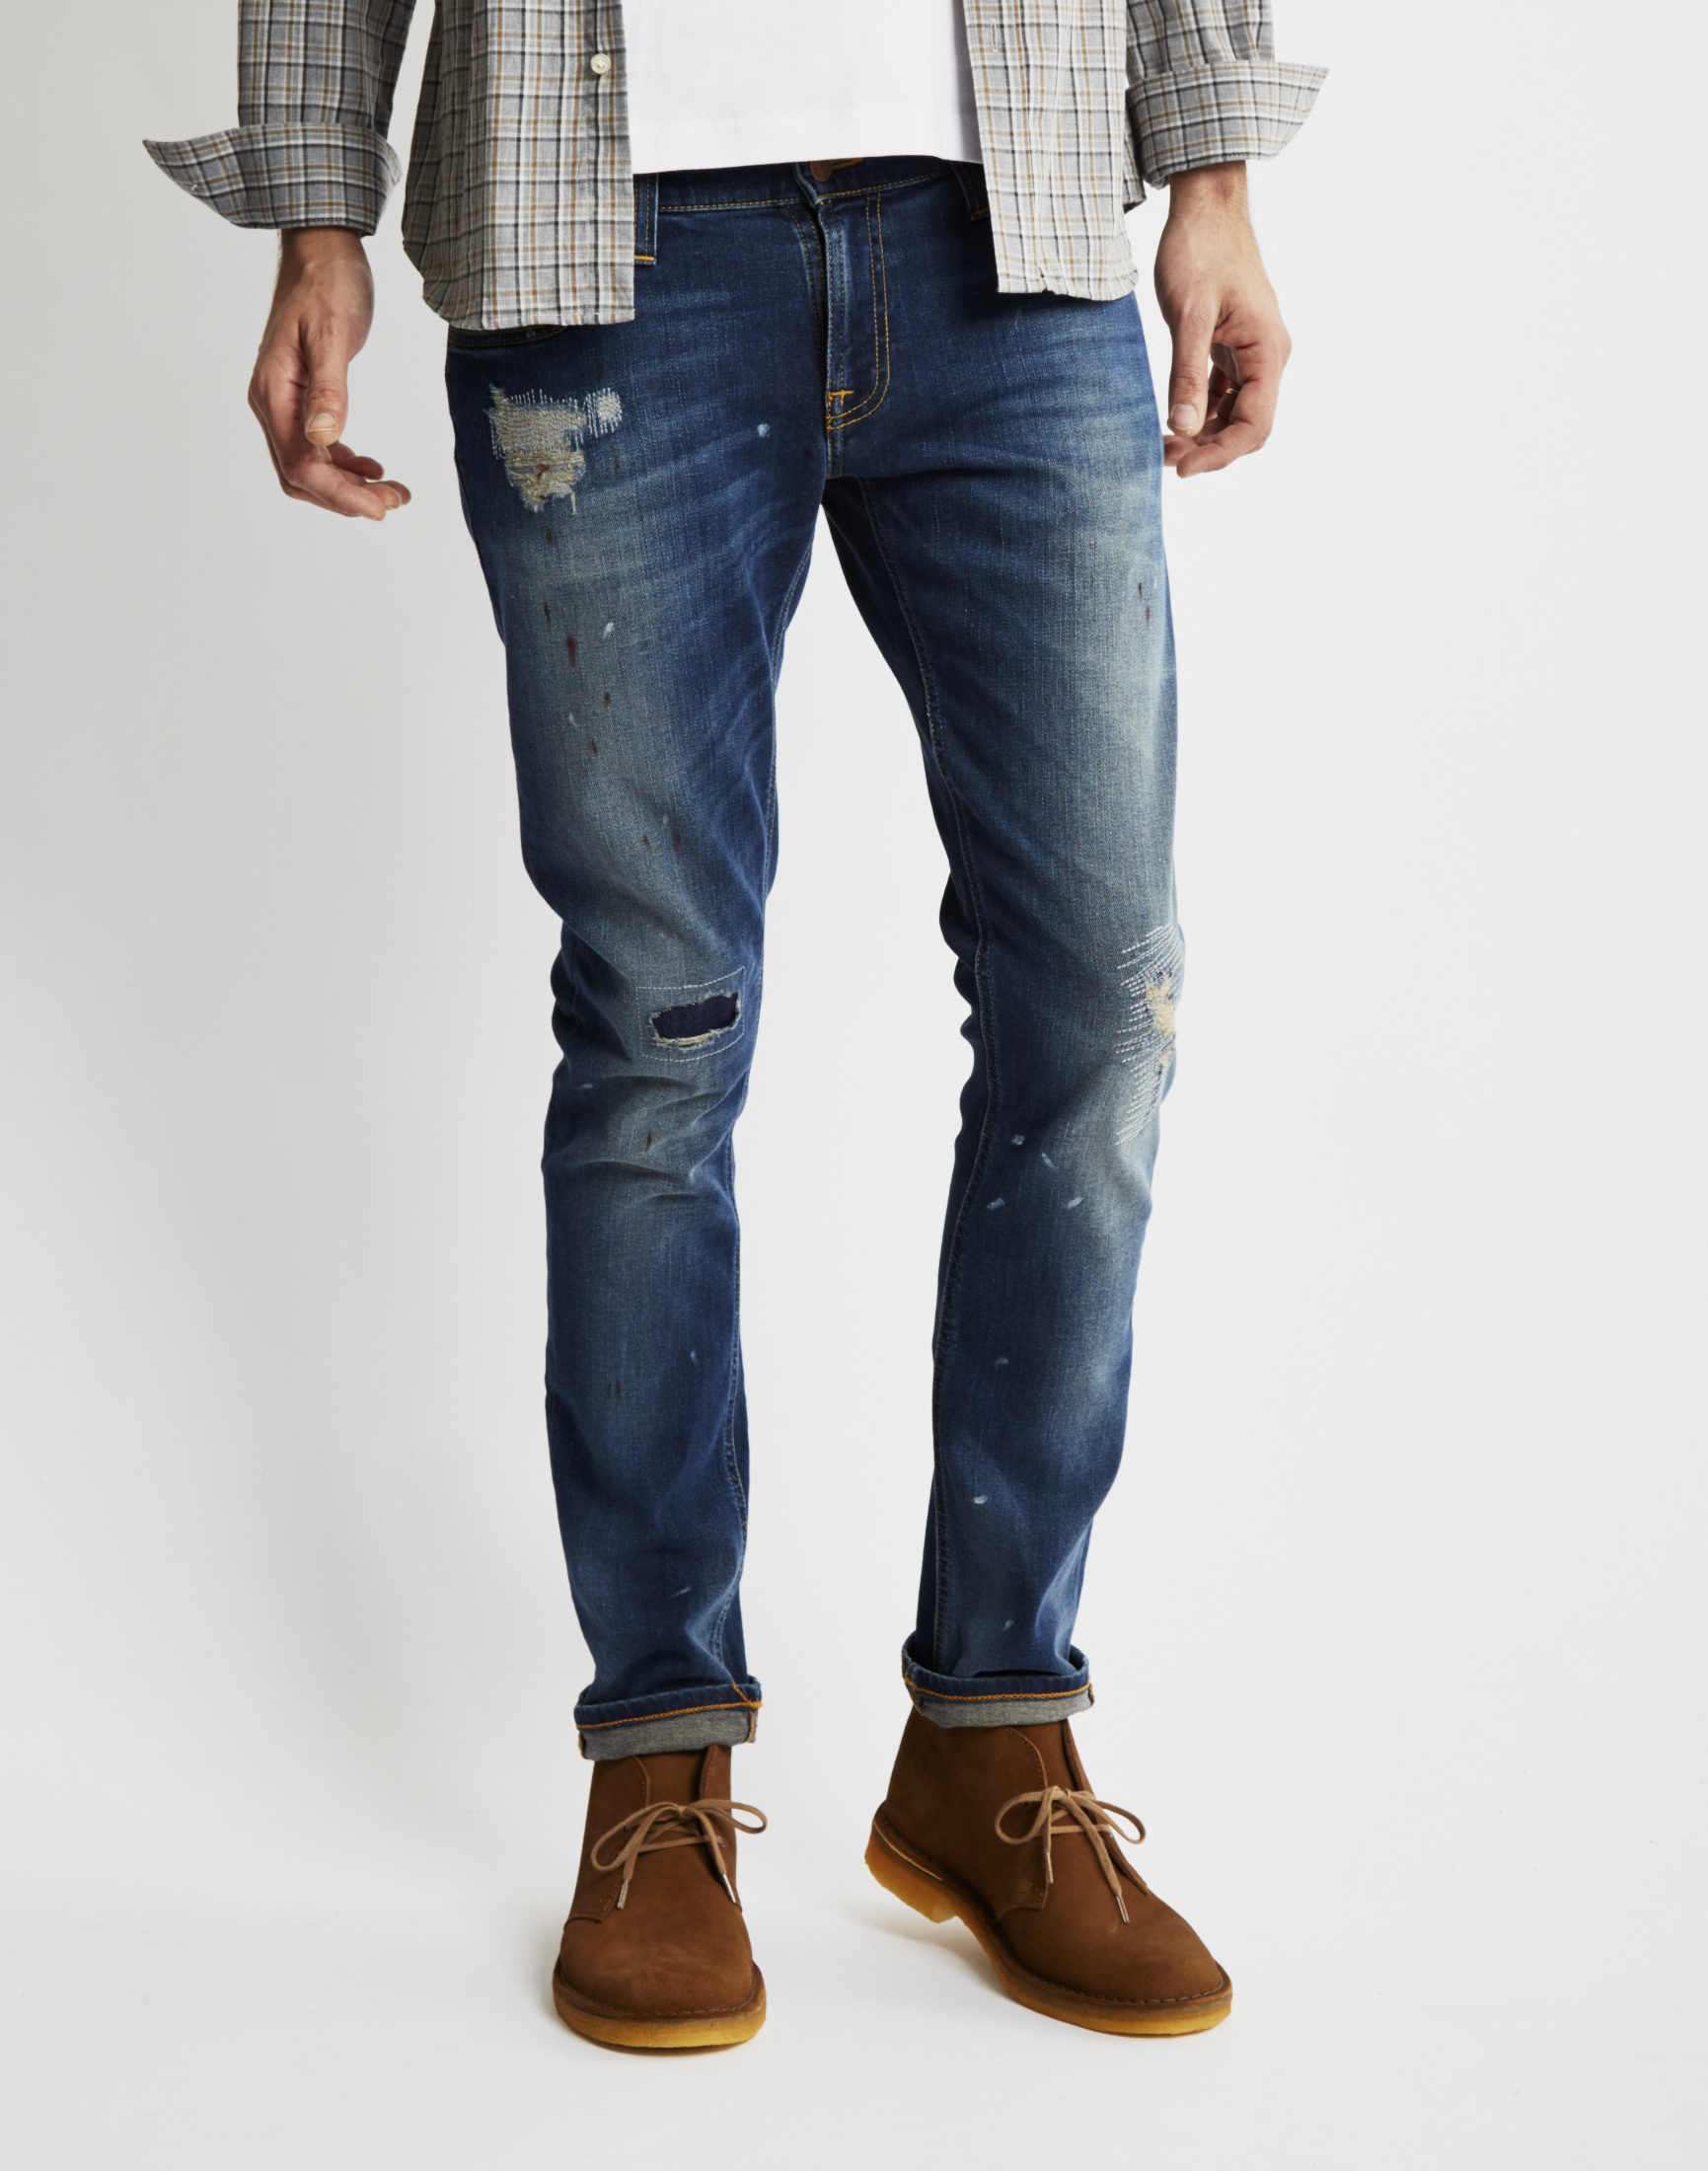 nudie jeans tight long john jacksson replica jeans in blue. Black Bedroom Furniture Sets. Home Design Ideas